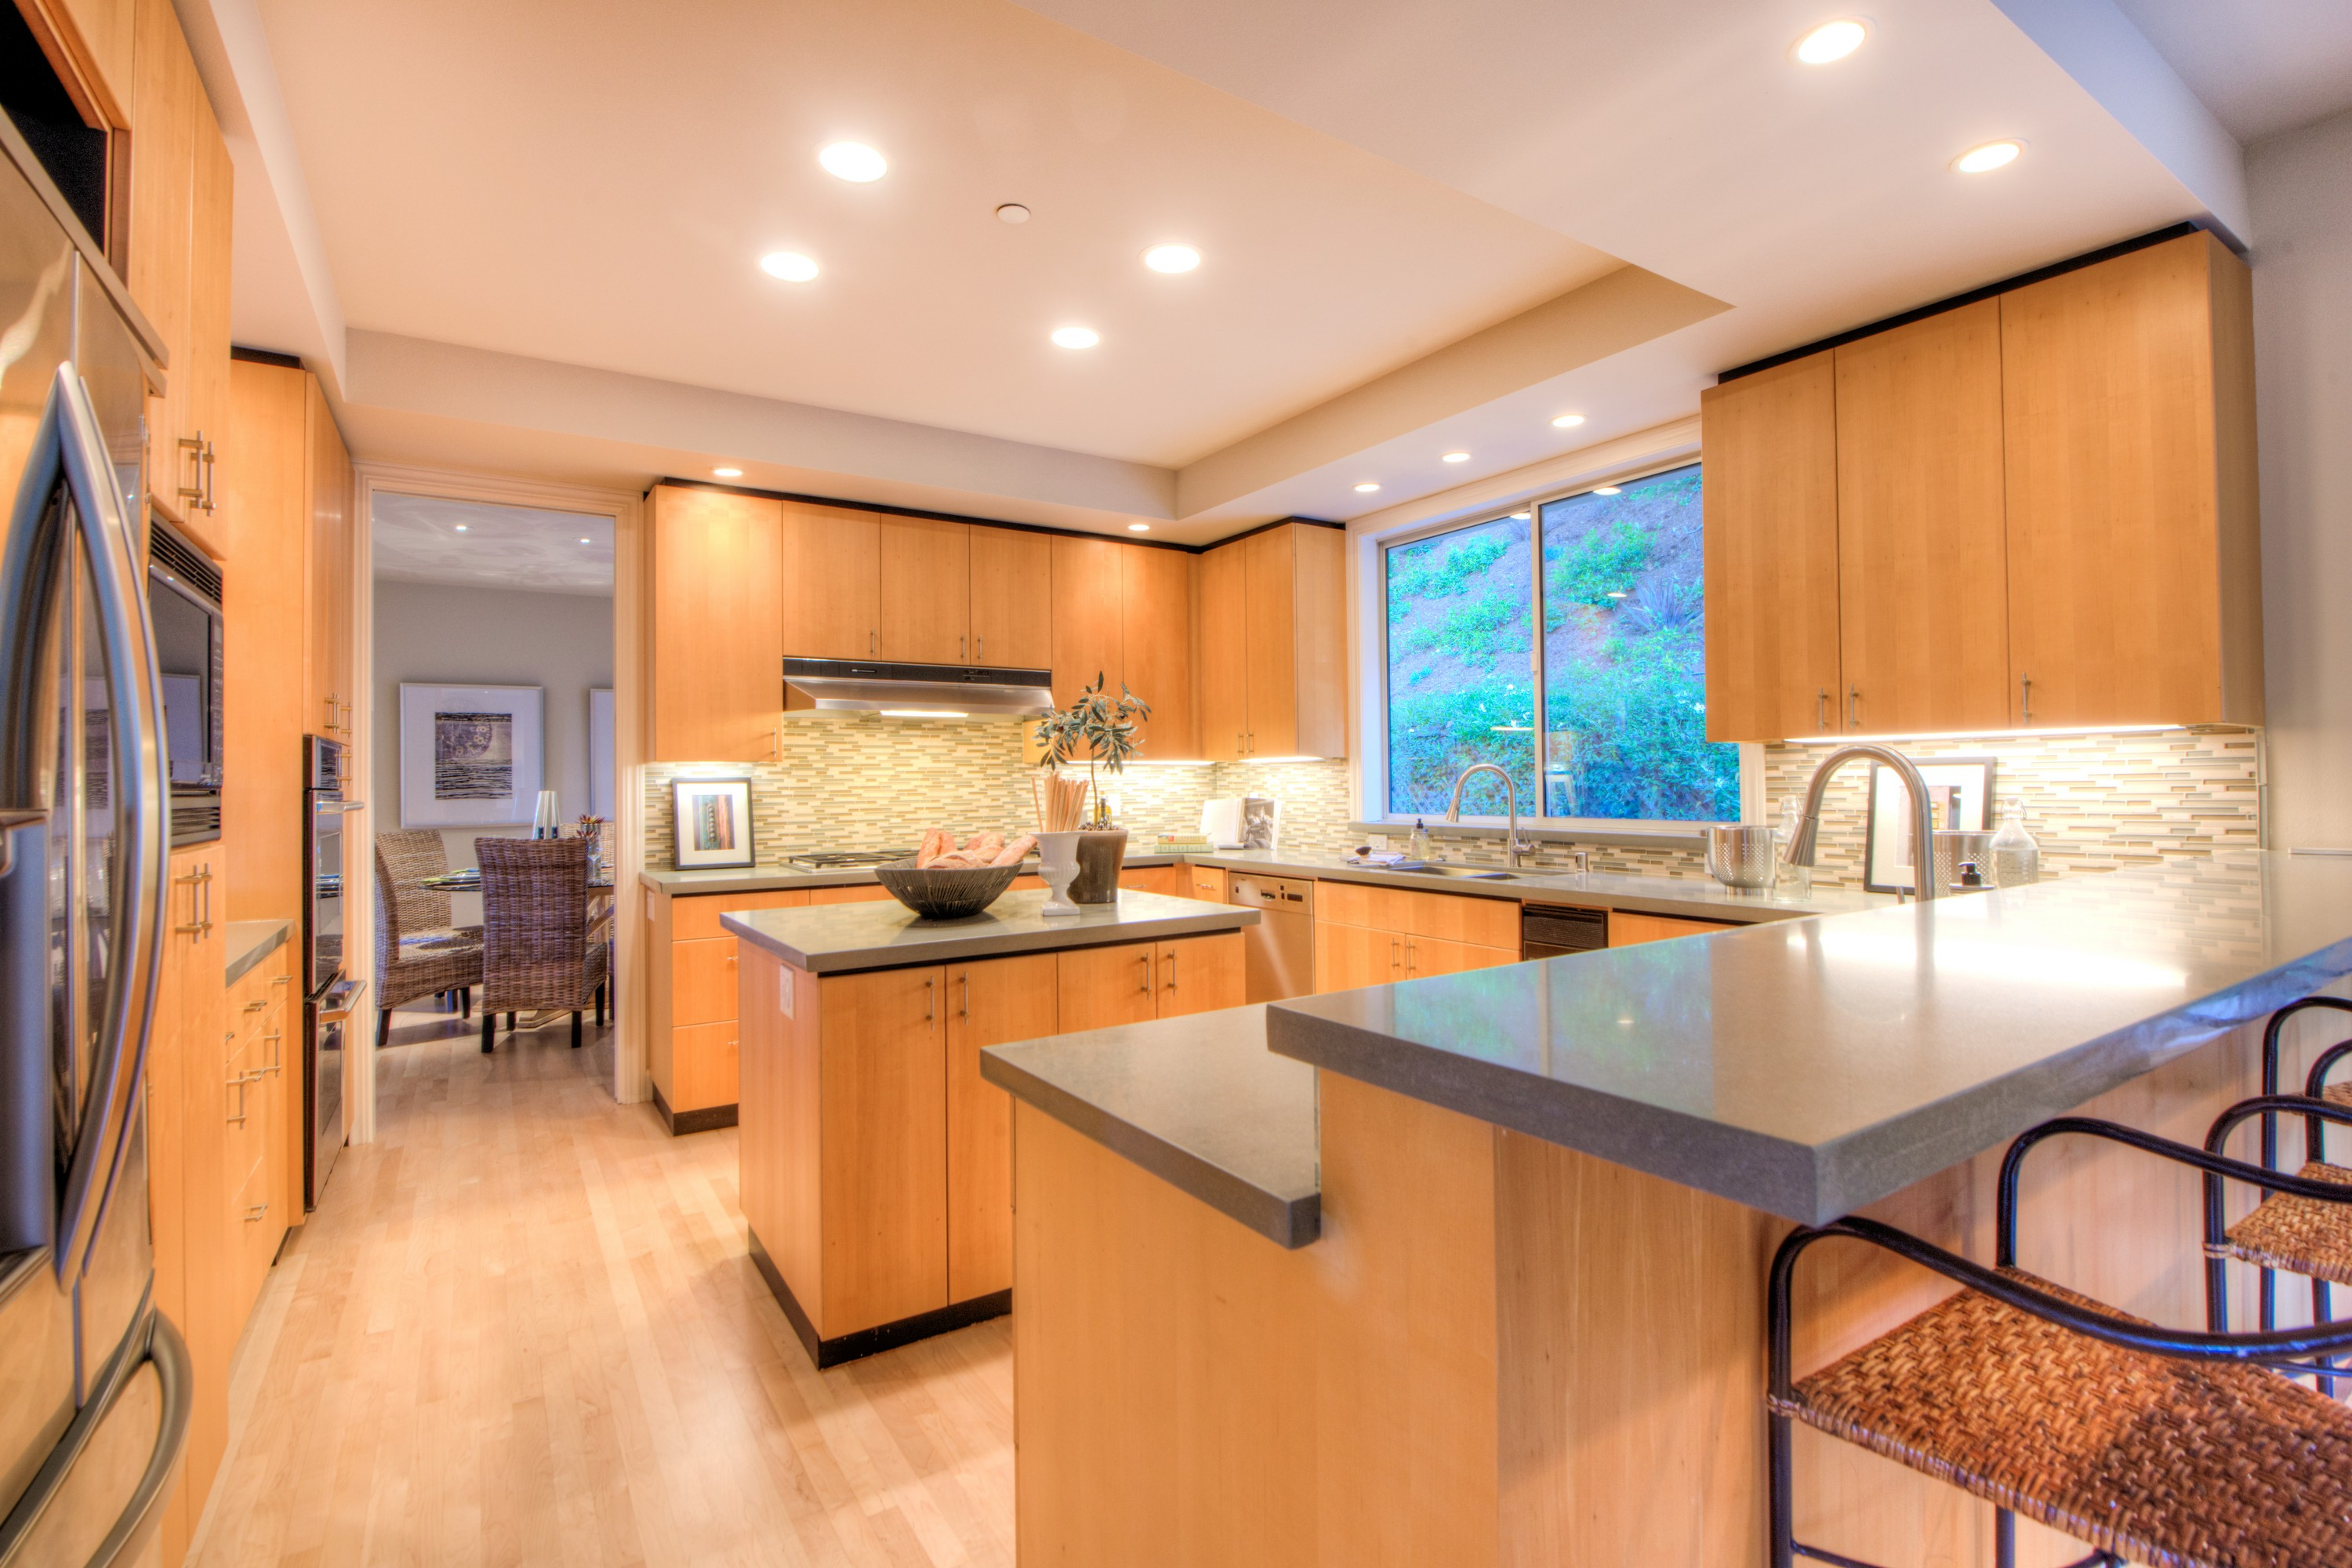 Single Family Home for Sale at Privacy, Tranquility and Views 255 Ralston Ave Mill Valley, California, 94941 United States